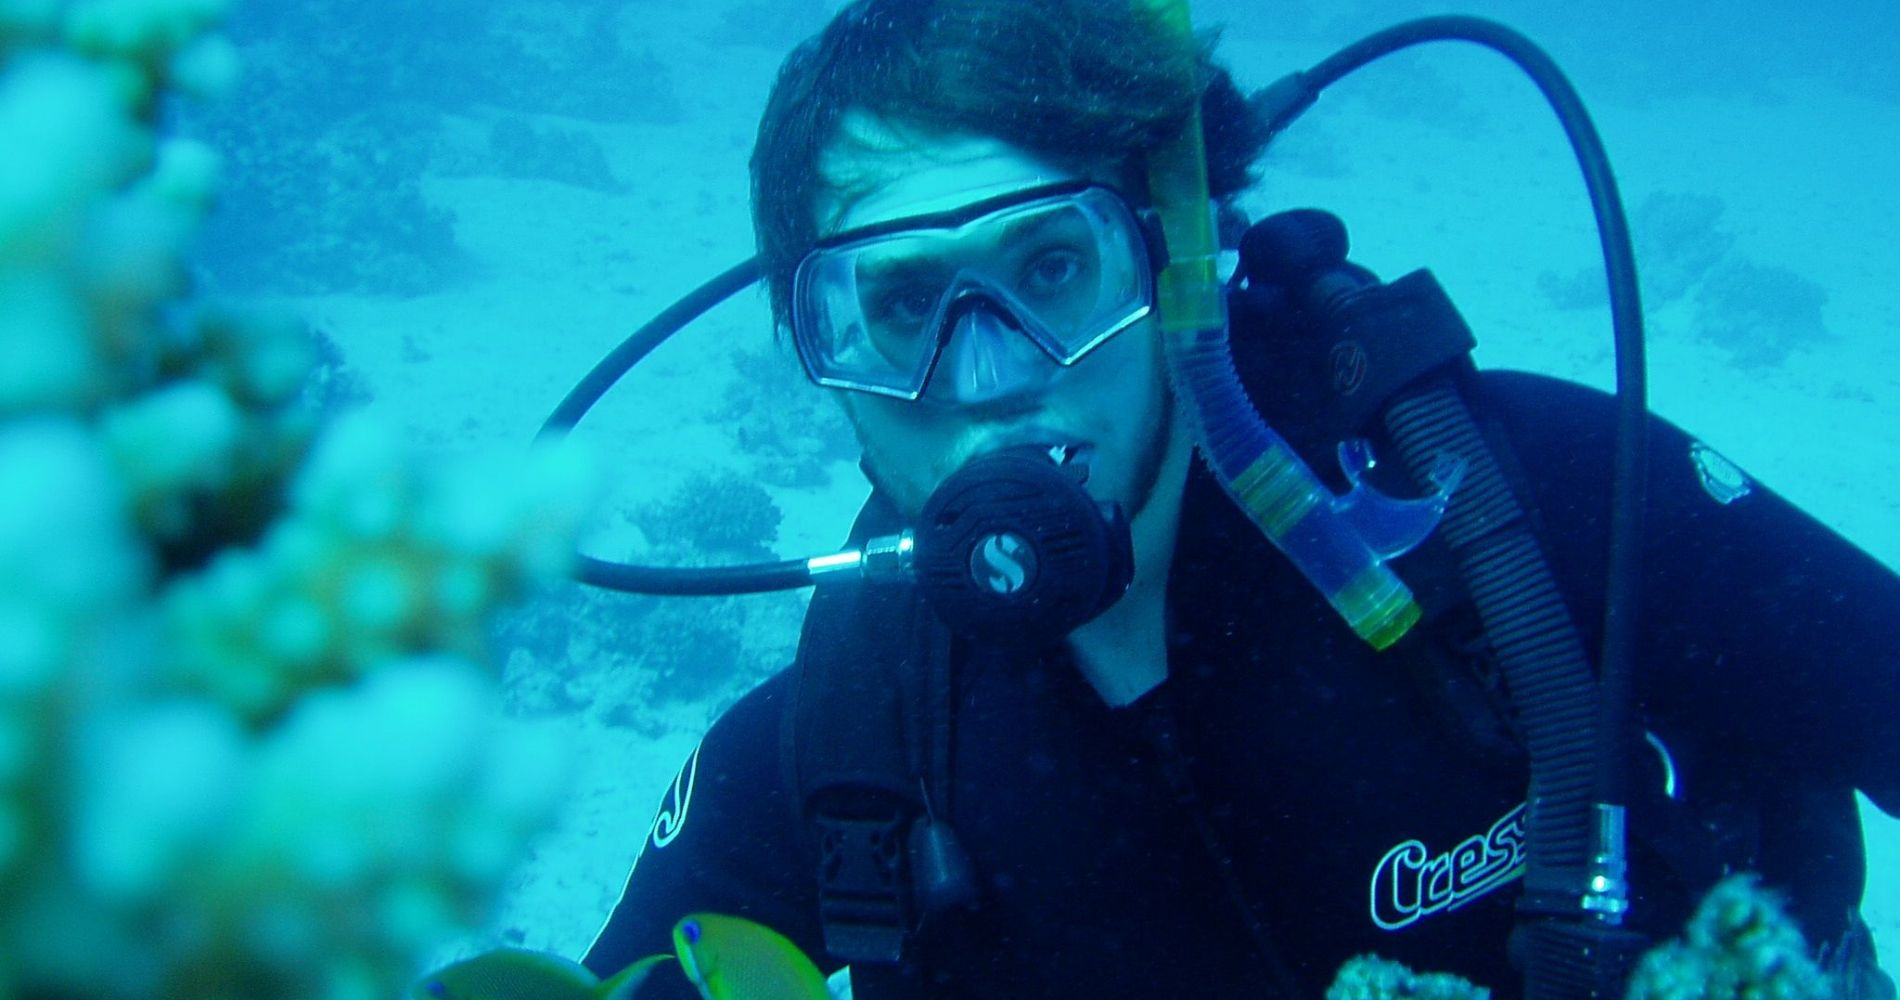 Full Day Diving for Beginners in Bali